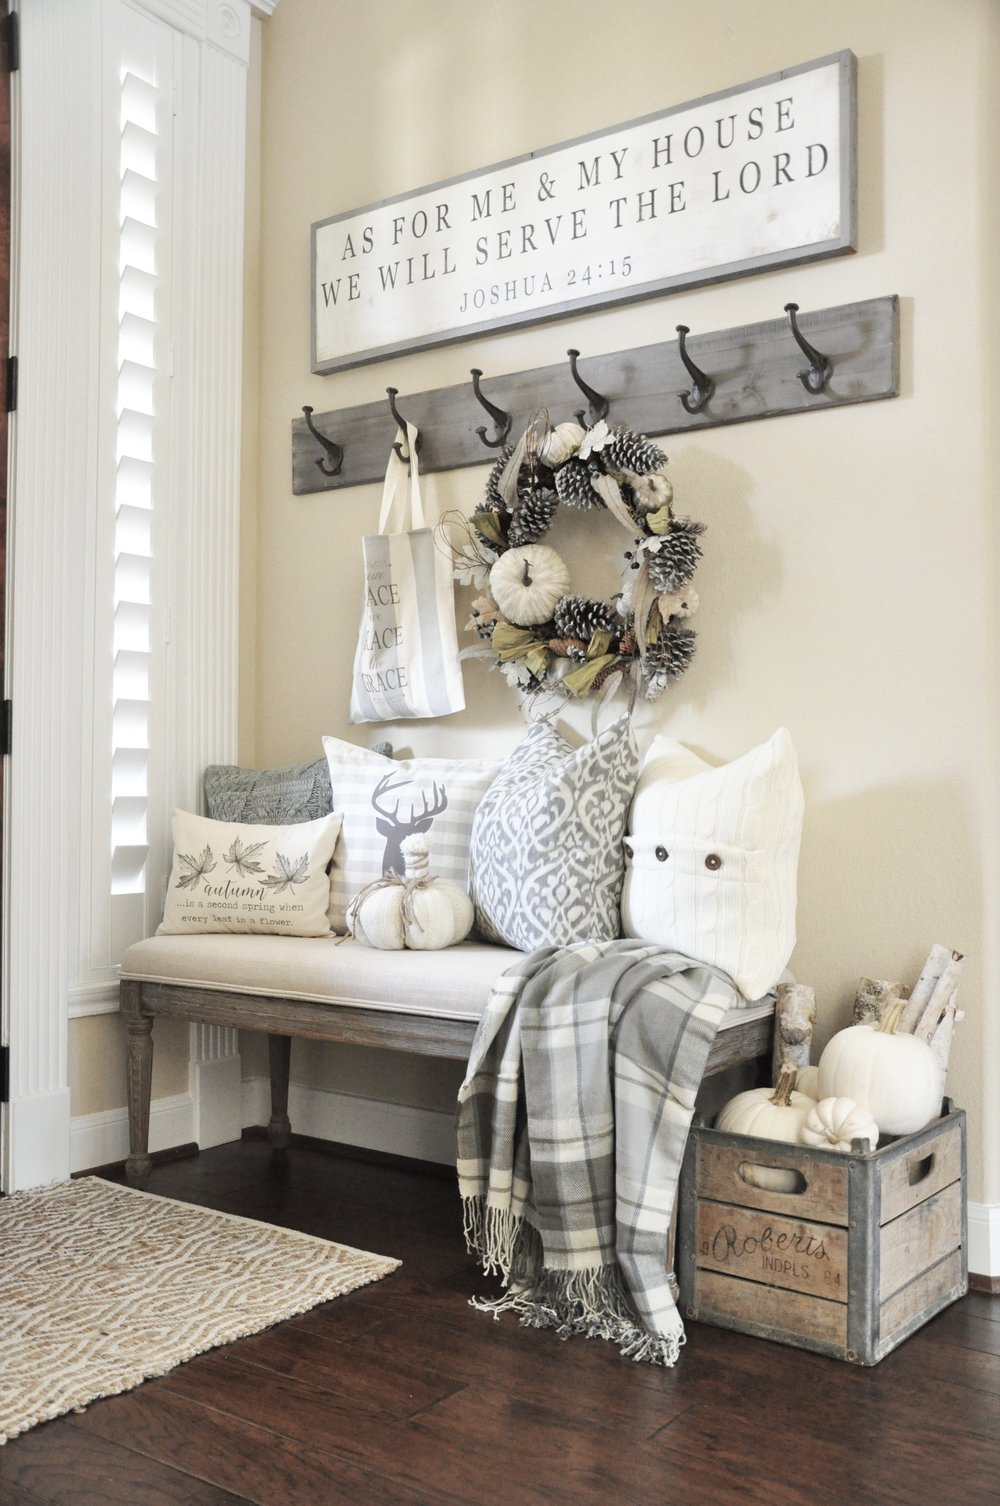 Rustic farmhouse style entryway decor ideas